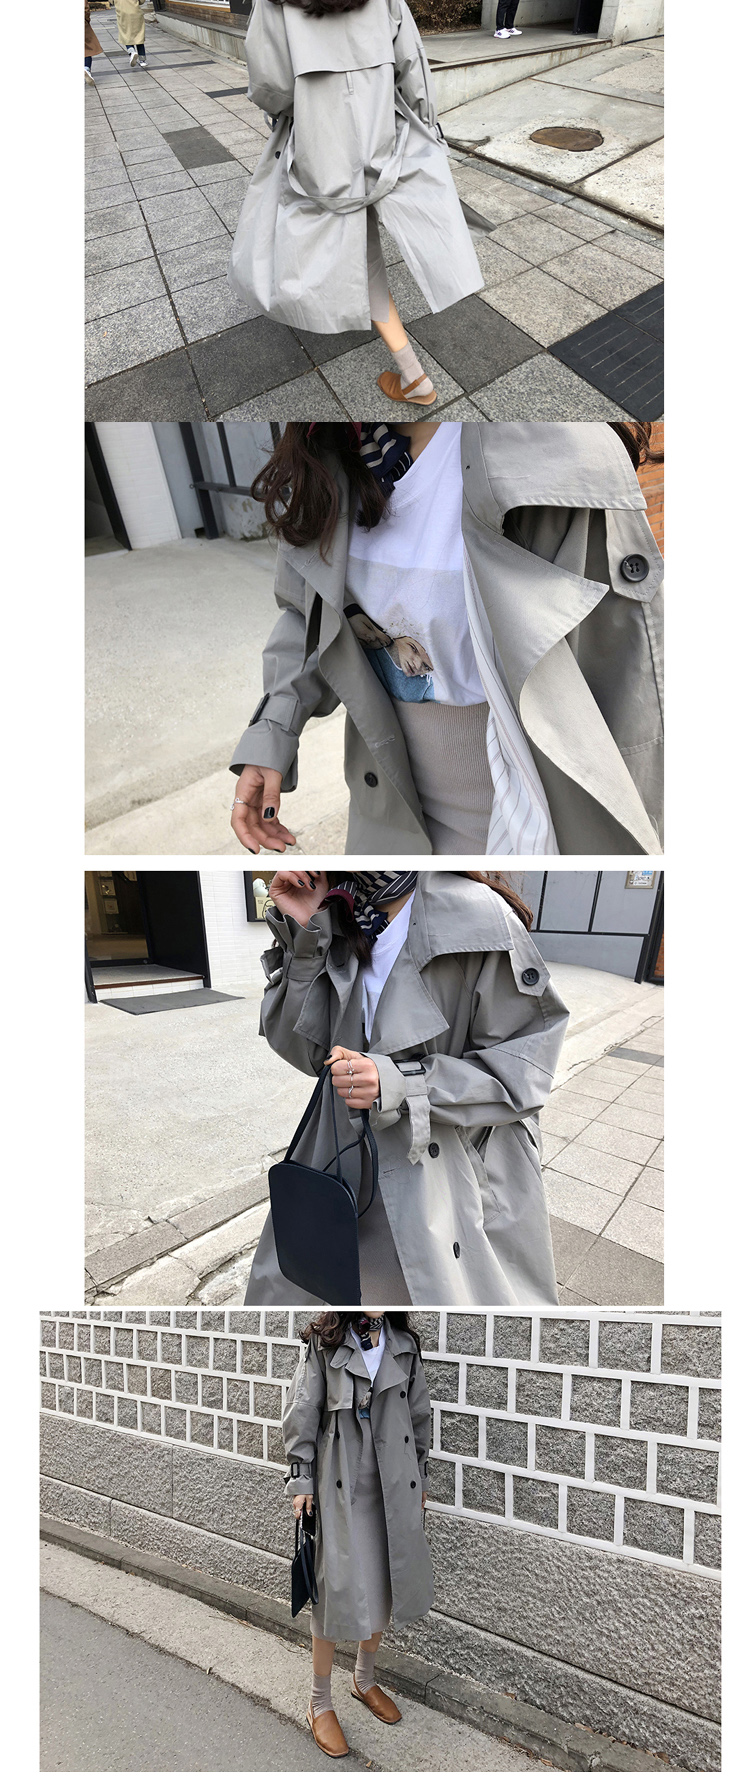 Russian autumn winter casual loose trench coat with sashes oversize Double Breasted Vintage overcoats windbreaker outwear 8